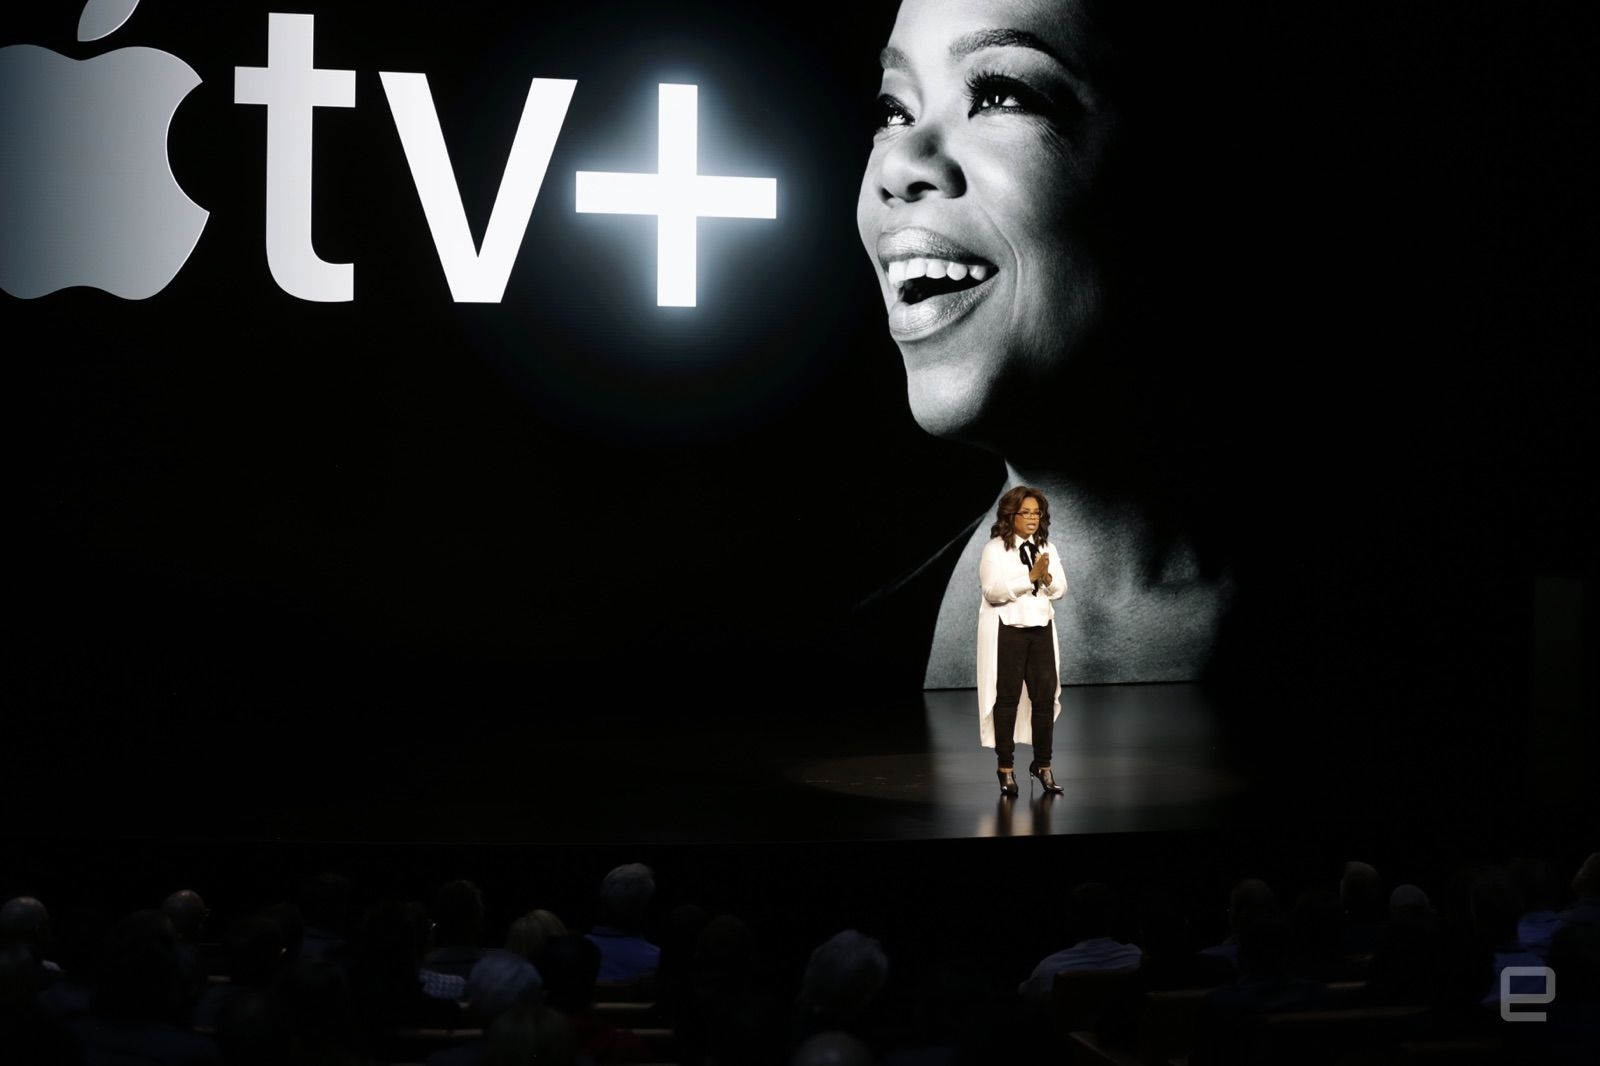 Recommended Reading: Apple's ambitious TV plan | DeviceDaily.com